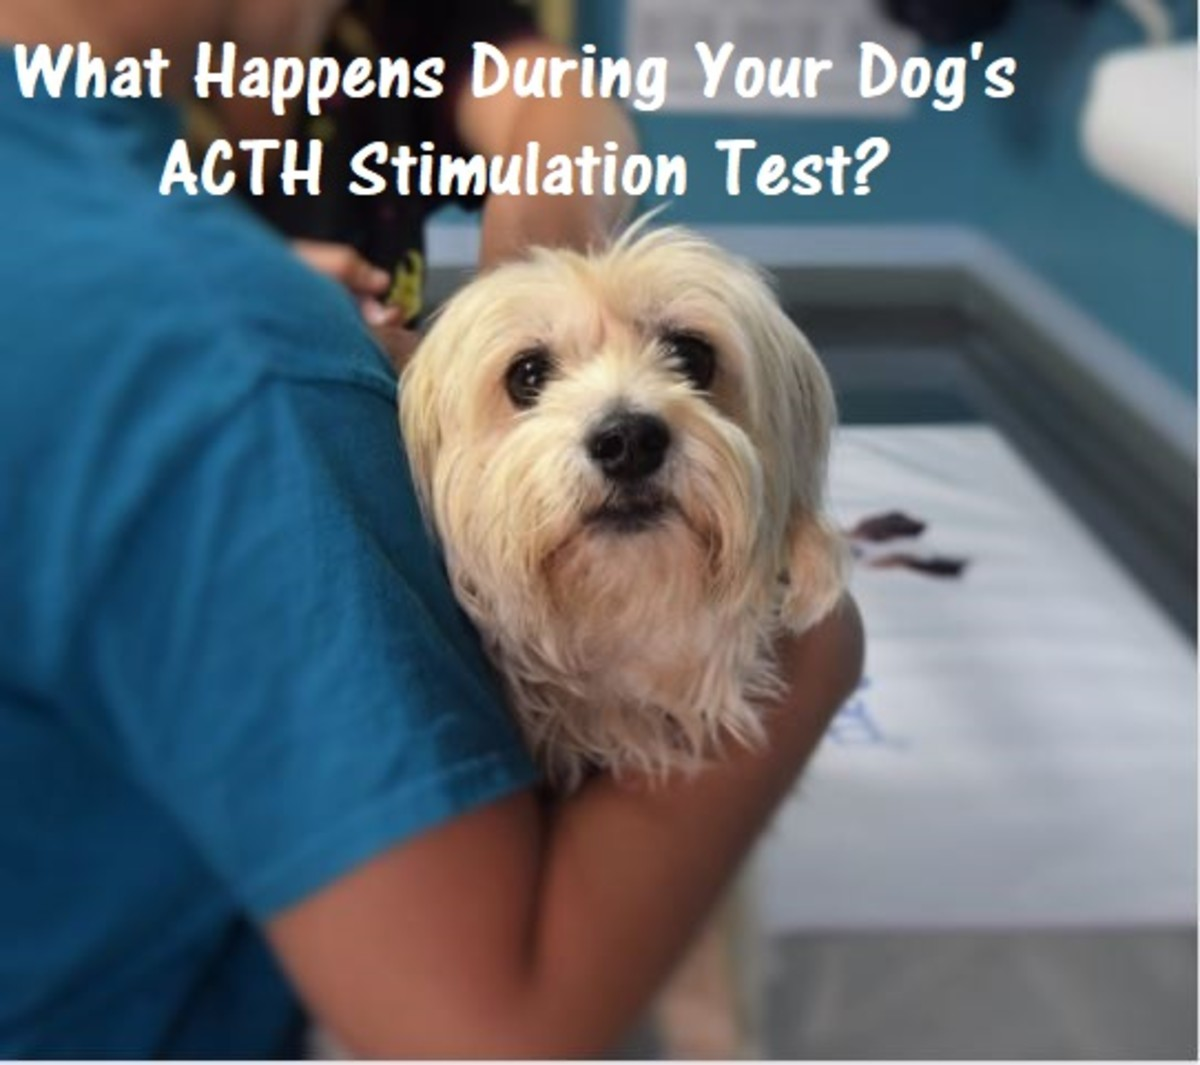 What Happens During Your Dog's ACTH Stimulation Test?